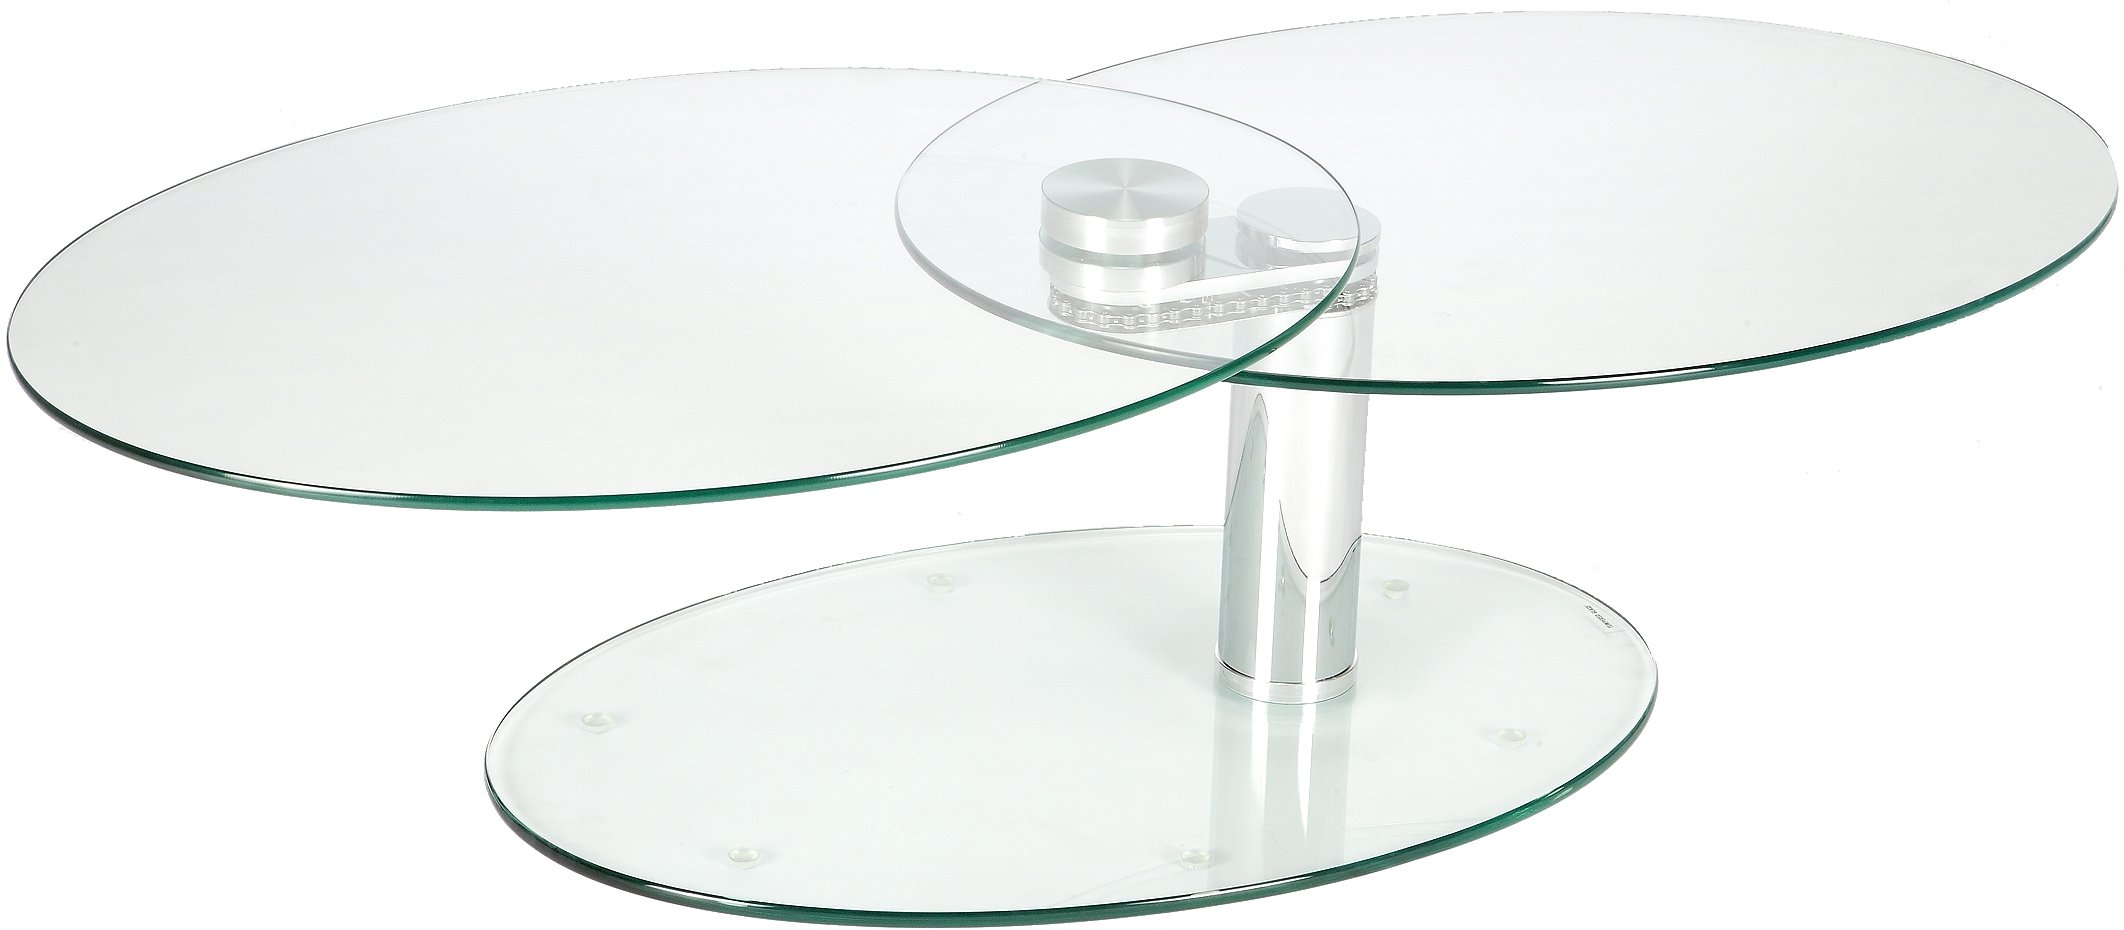 Table basse verre ovale articulee - Table basse verre ovale ...